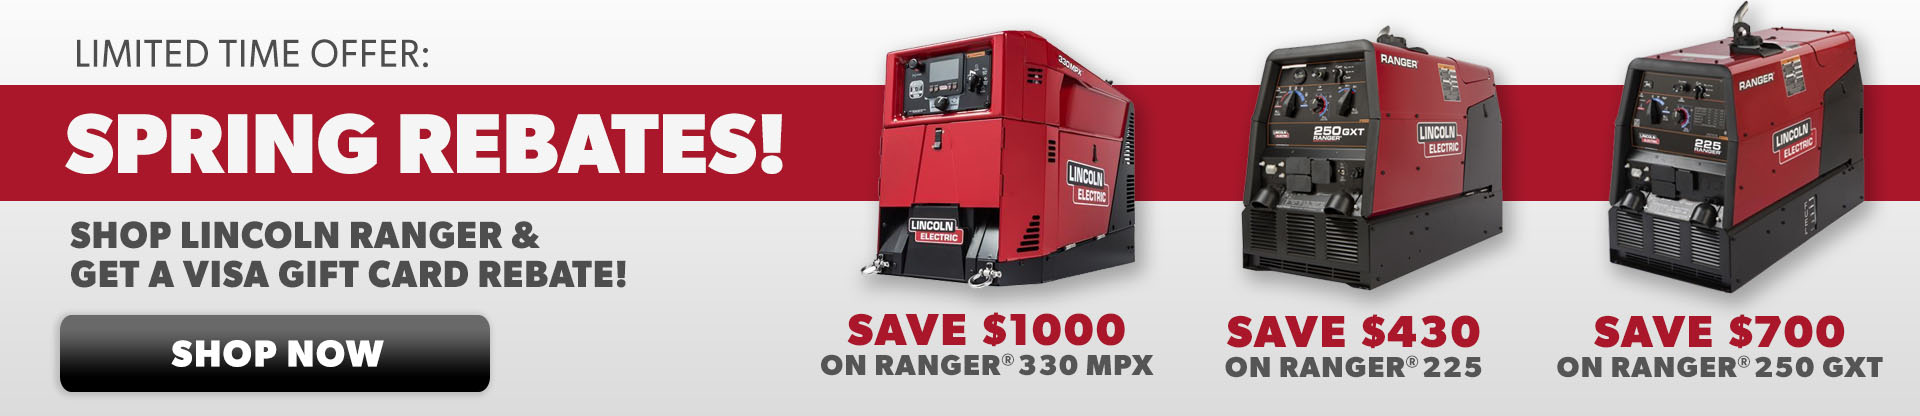 Lincoln Ranger Engine Drive Promotion